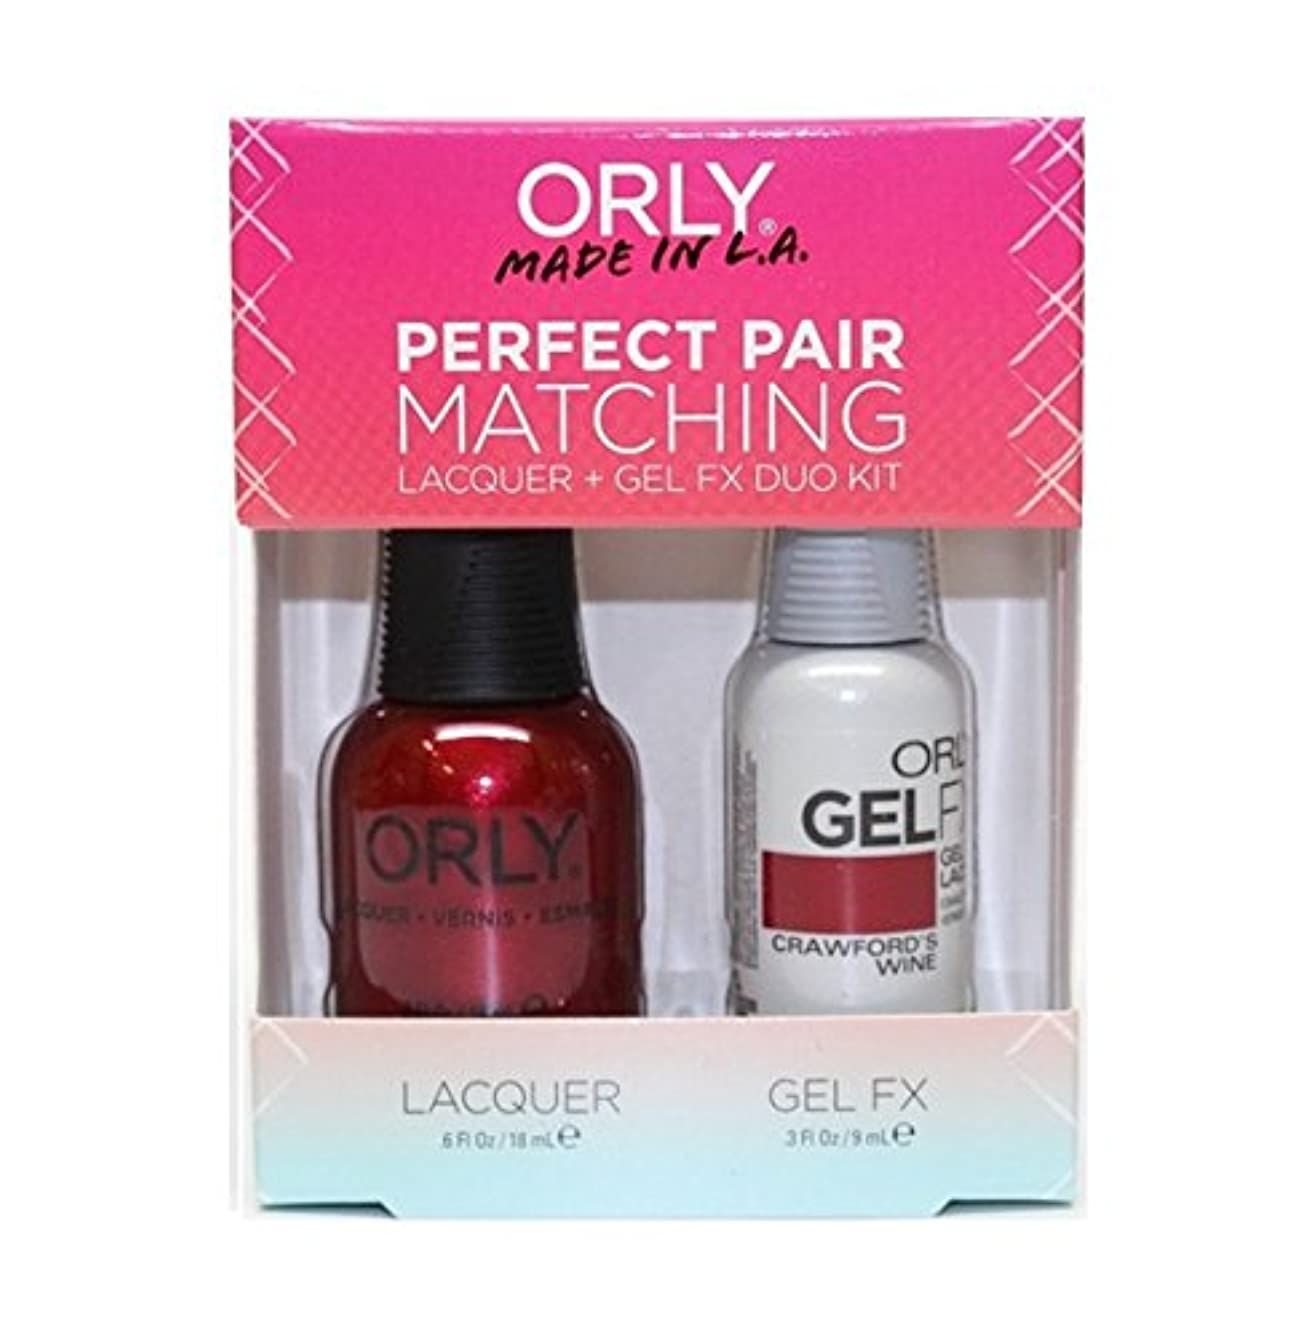 バリー居間スリップシューズOrly - Perfect Pair Matching Lacquer+Gel FX Kit - Crawford's Wine - 0.6 oz / 0.3 oz